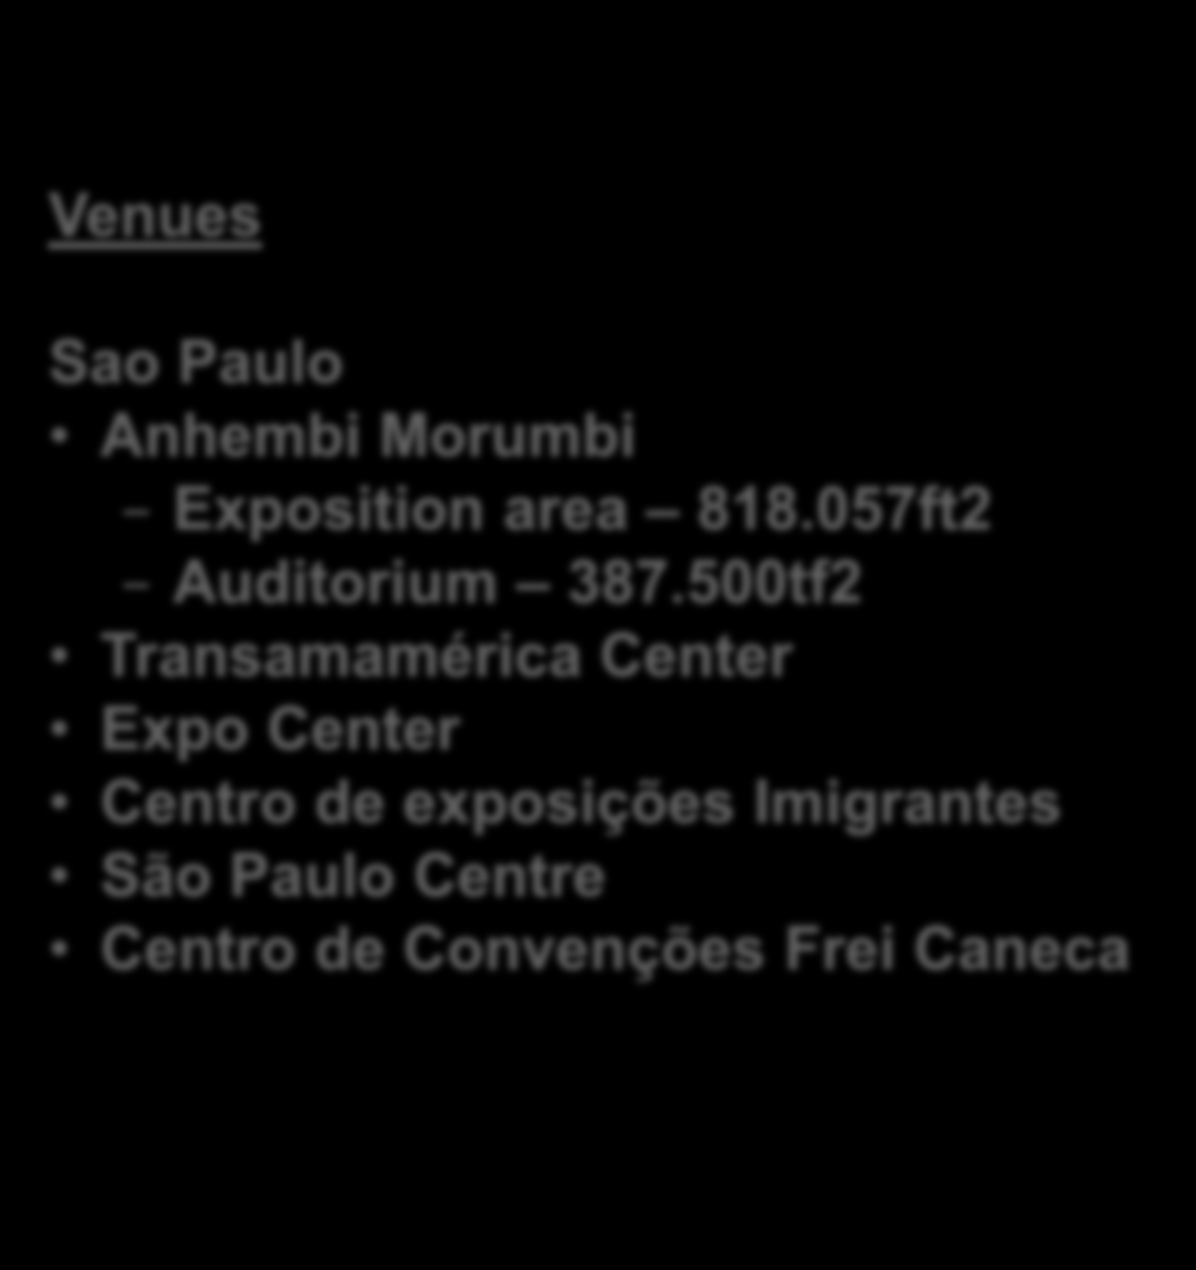 Organizing an event as a westernized planner?! Venues Sao Paulo Anhembi Morumbi Exposition area 818.057ft2 Auditorium 387.